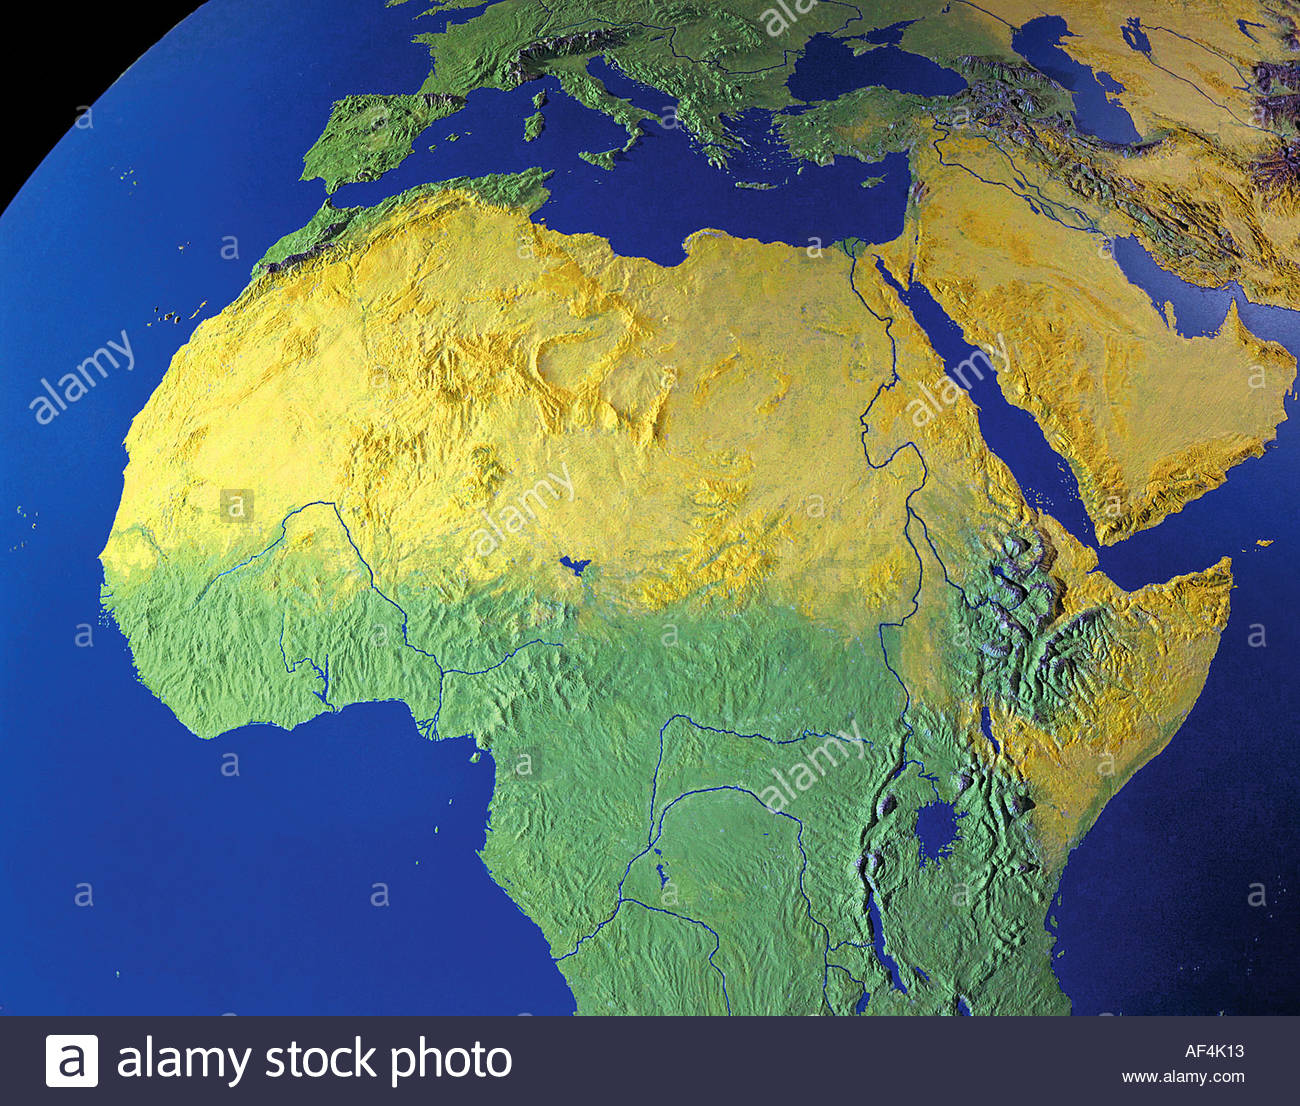 Map maps globe globes africa europe middle east stock photo royalty map maps globe globes africa europe middle east gumiabroncs Images